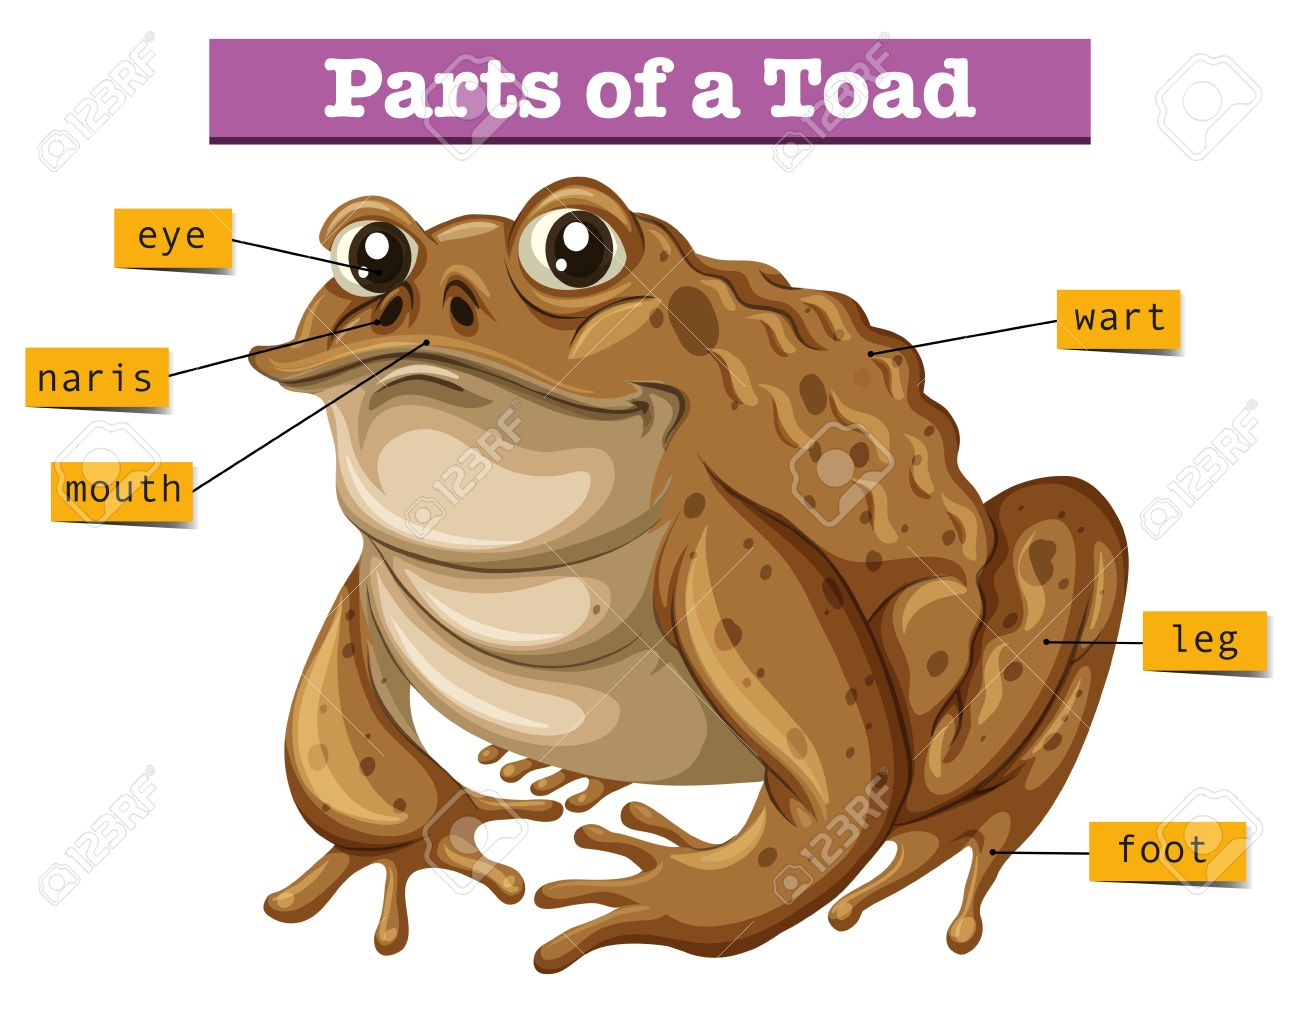 hight resolution of diagram showing parts of toad illustration royalty free cliparts toad diagram with label